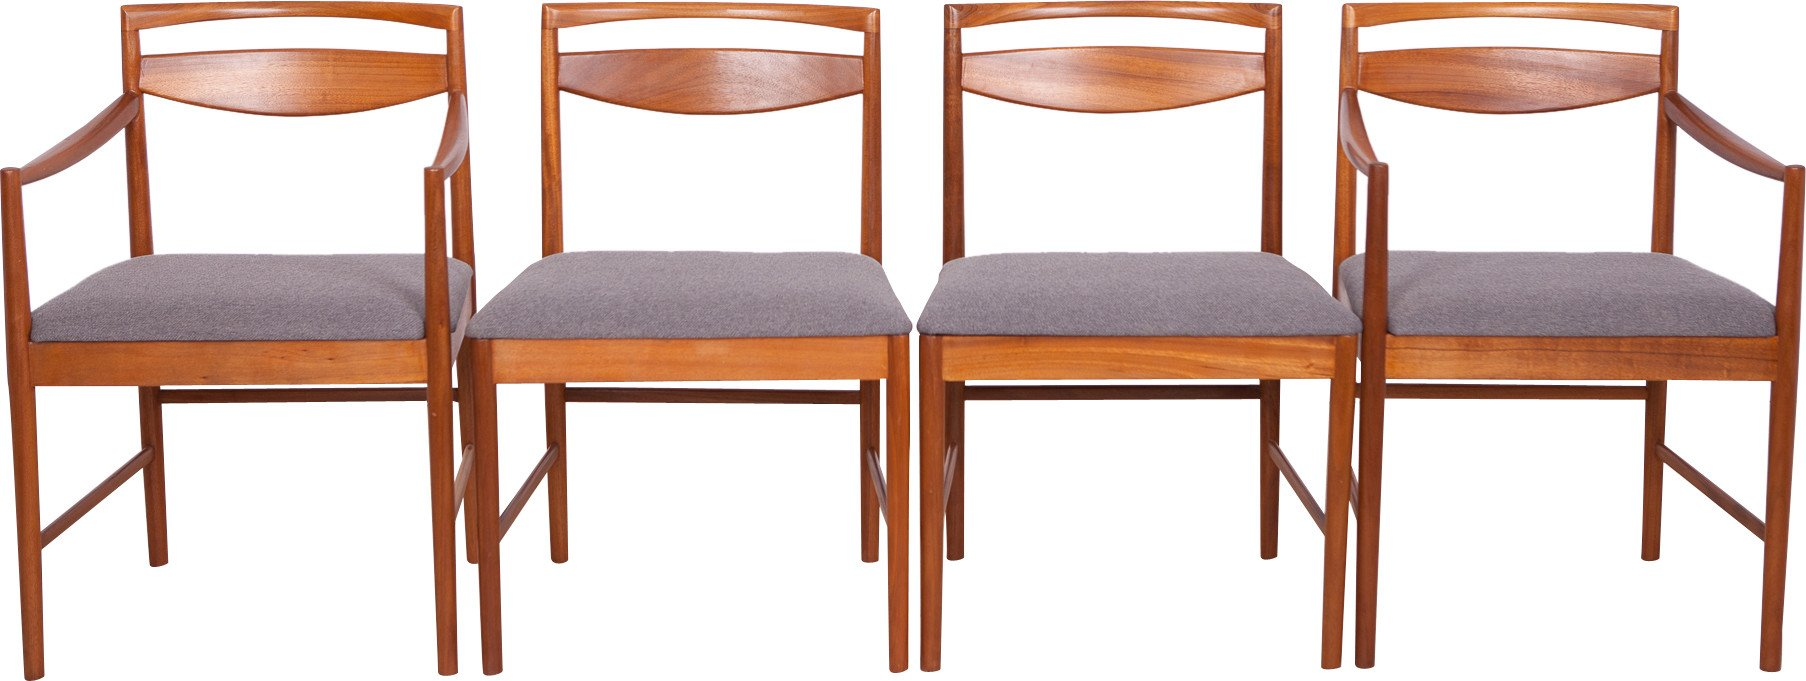 Set of Four Chairs by T. Robertson, McIntosh, Great Britain, 1970s